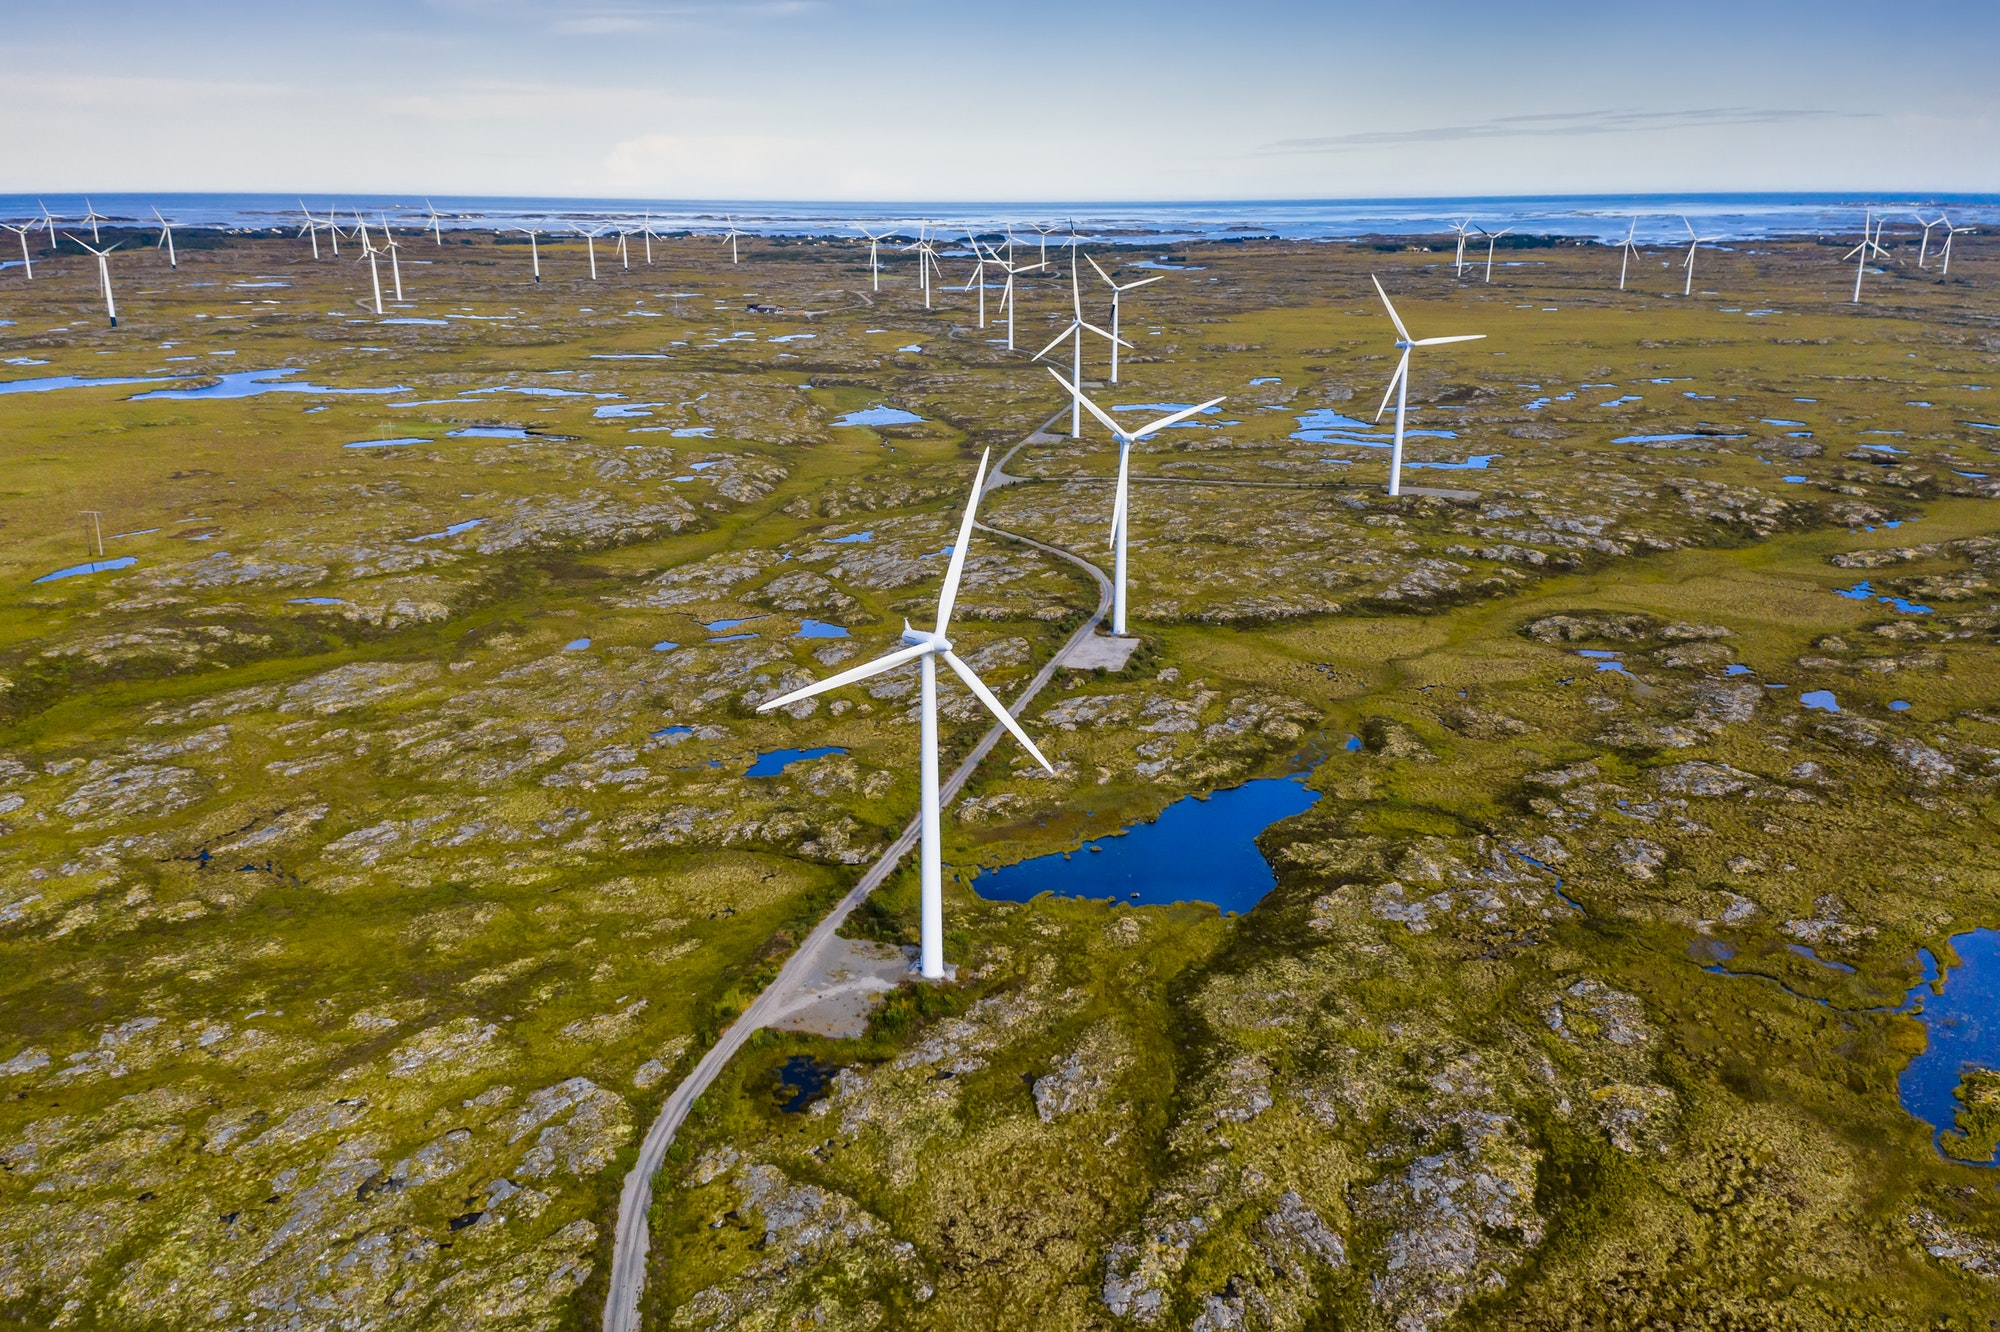 Wind generators in the arctic tundra. Norway, the island of Smola. Aerial view